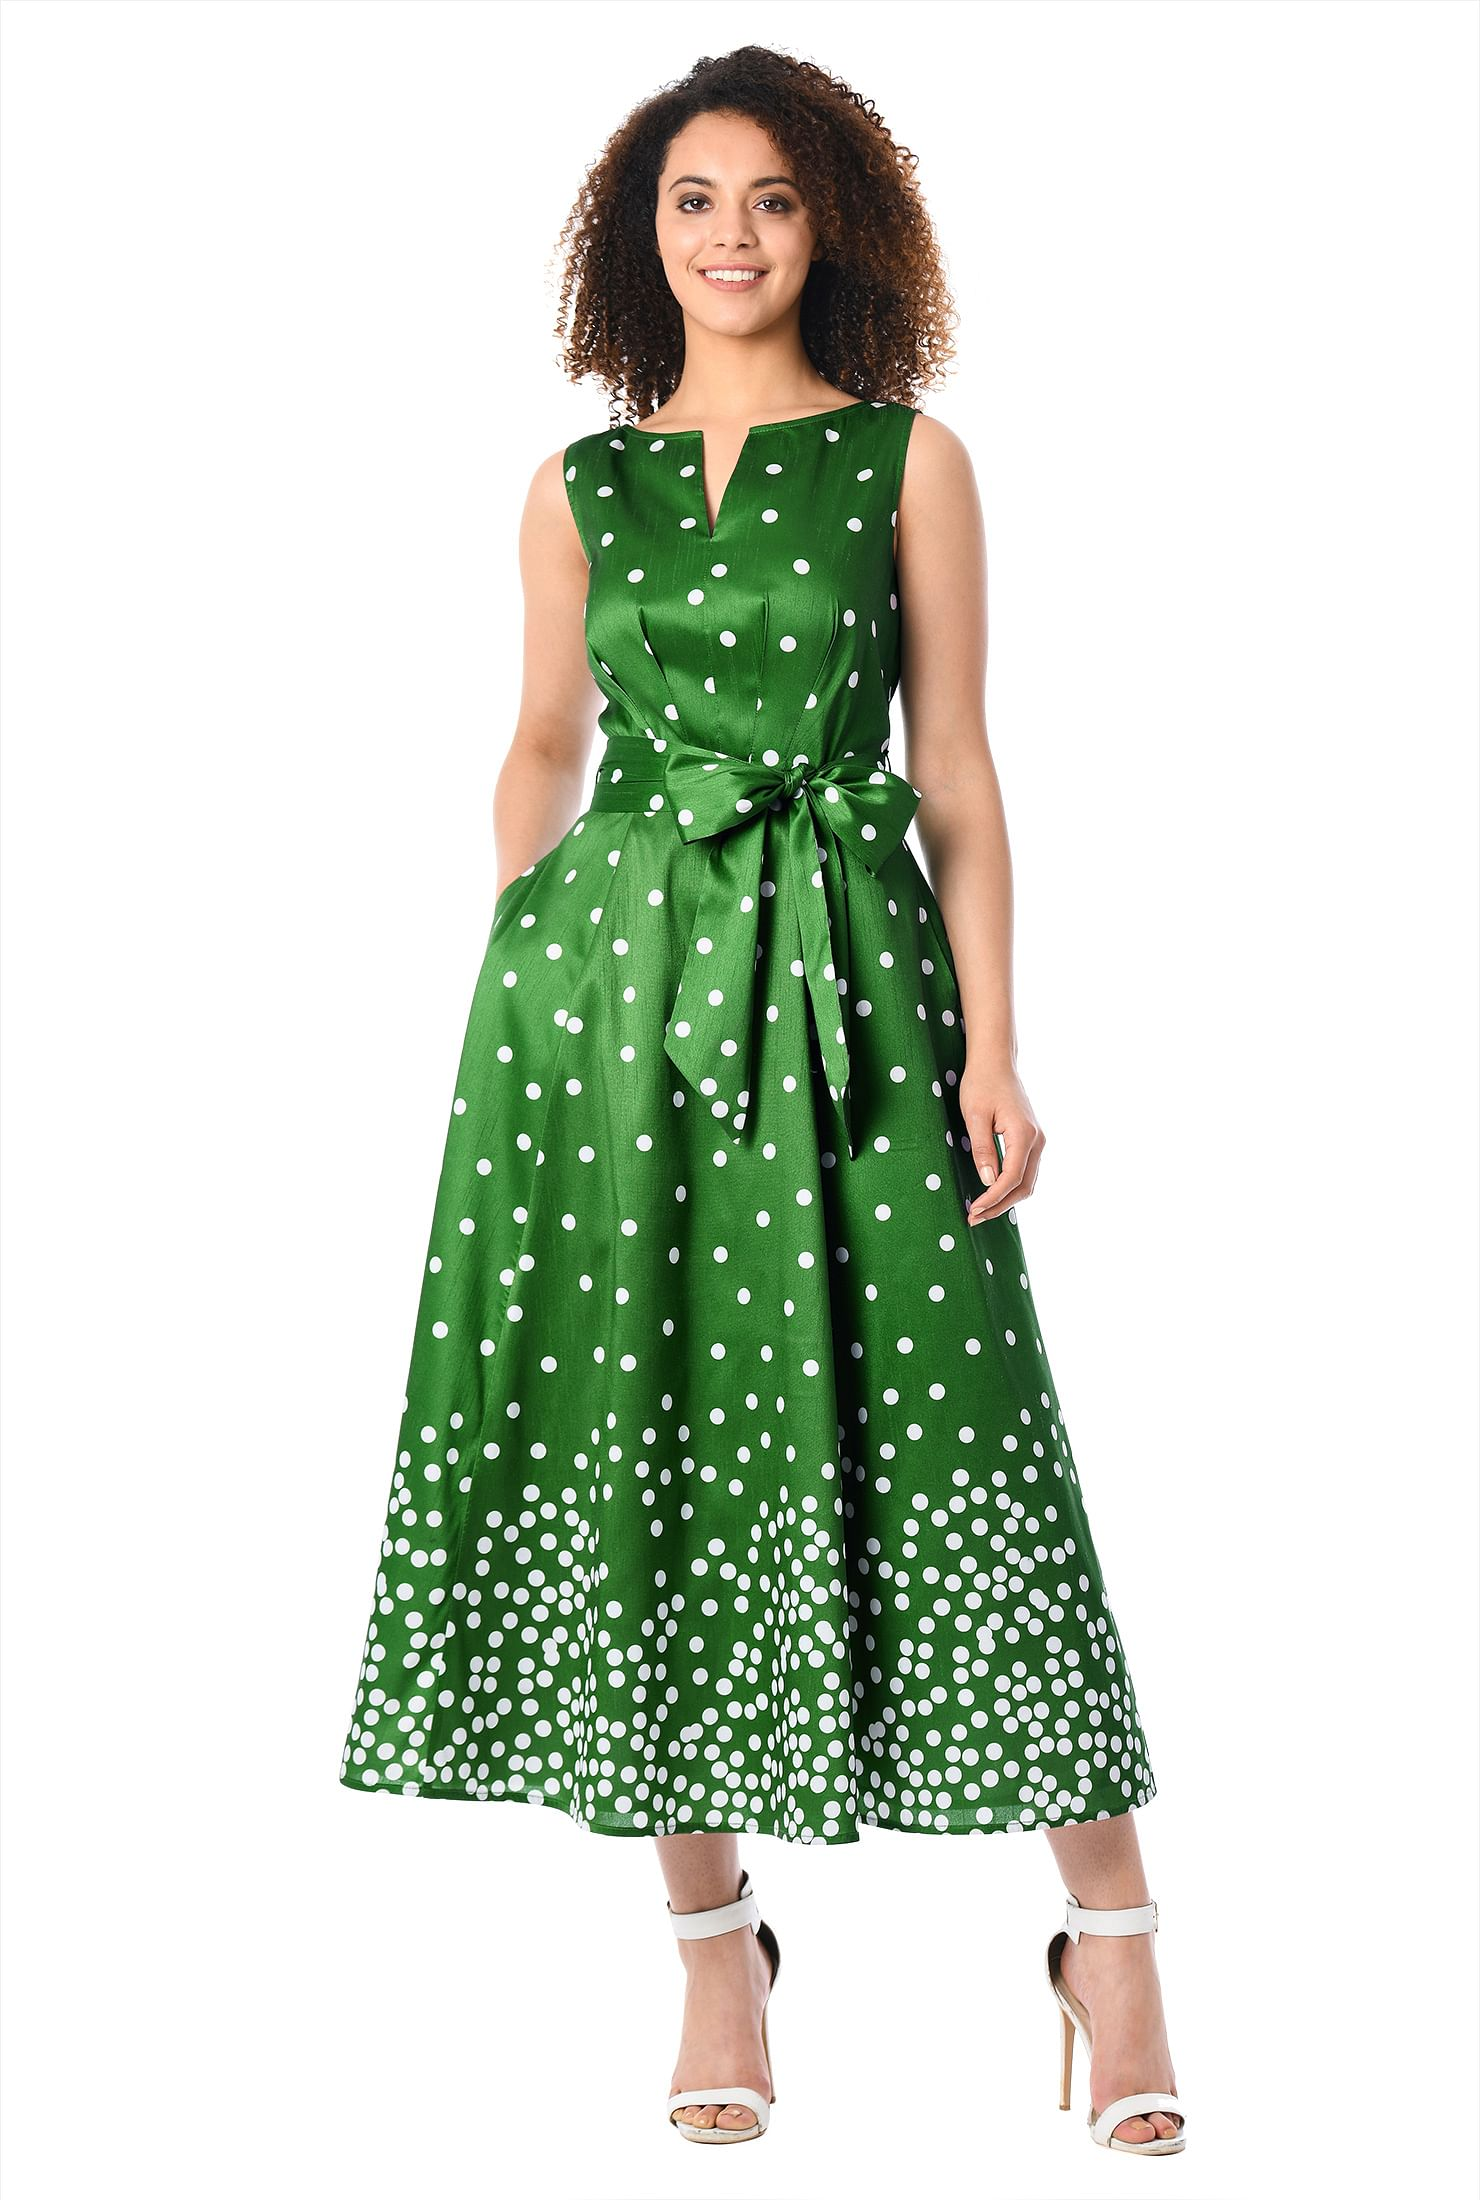 eShakti Women's Polka dot print dupioni midi dress